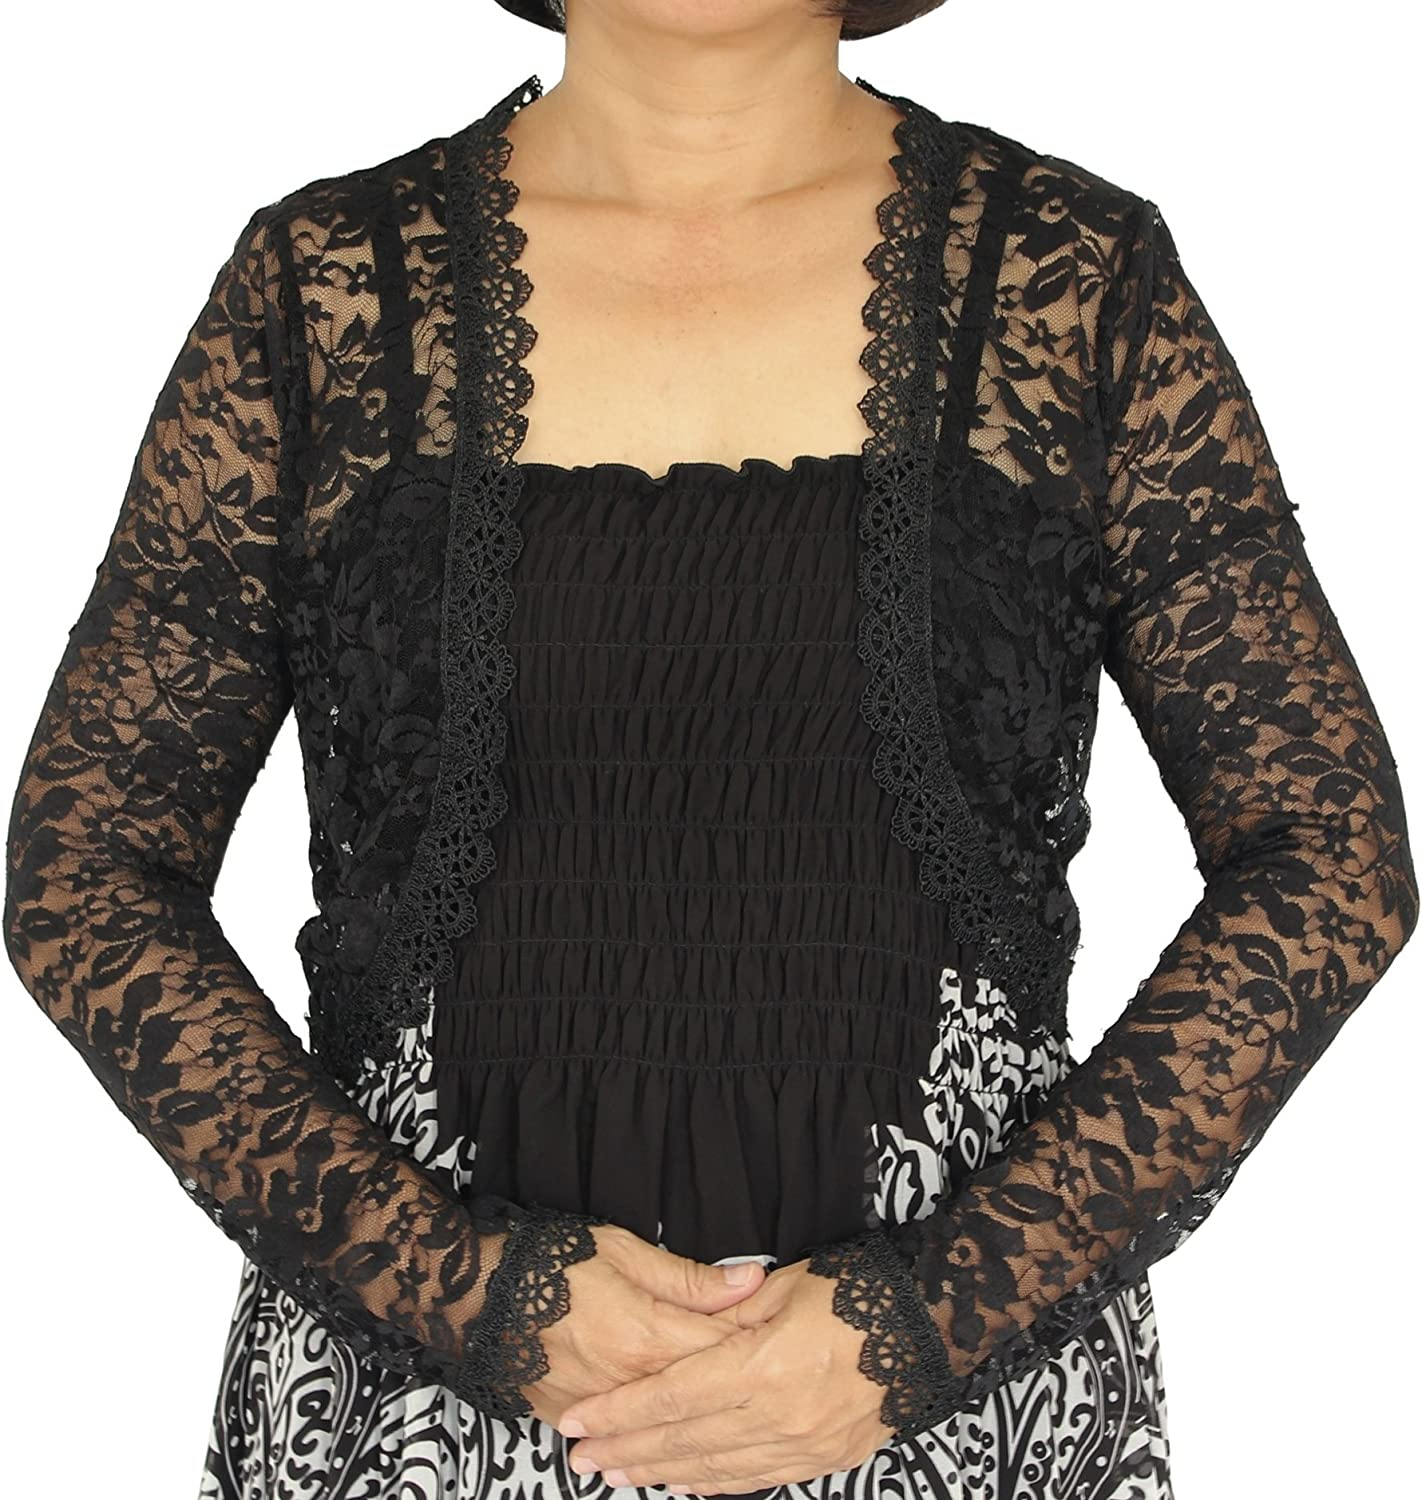 Women Lace Shrug Long Sleeve Open Front Cardigan Sweater Lightweight Arm Cover